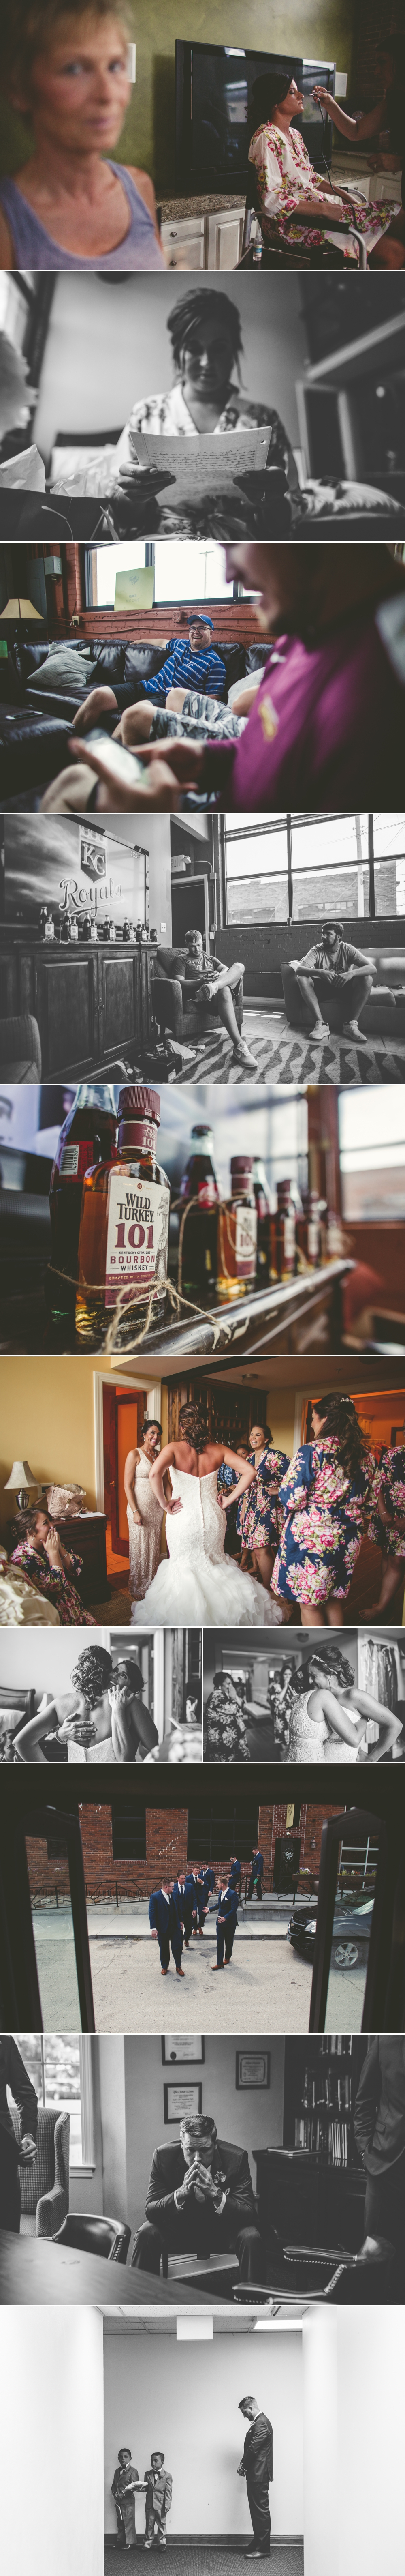 jason_domingues_photography_best_kansas_city_wedding_photographer_kc_weddings_28_event_space0001.jpg